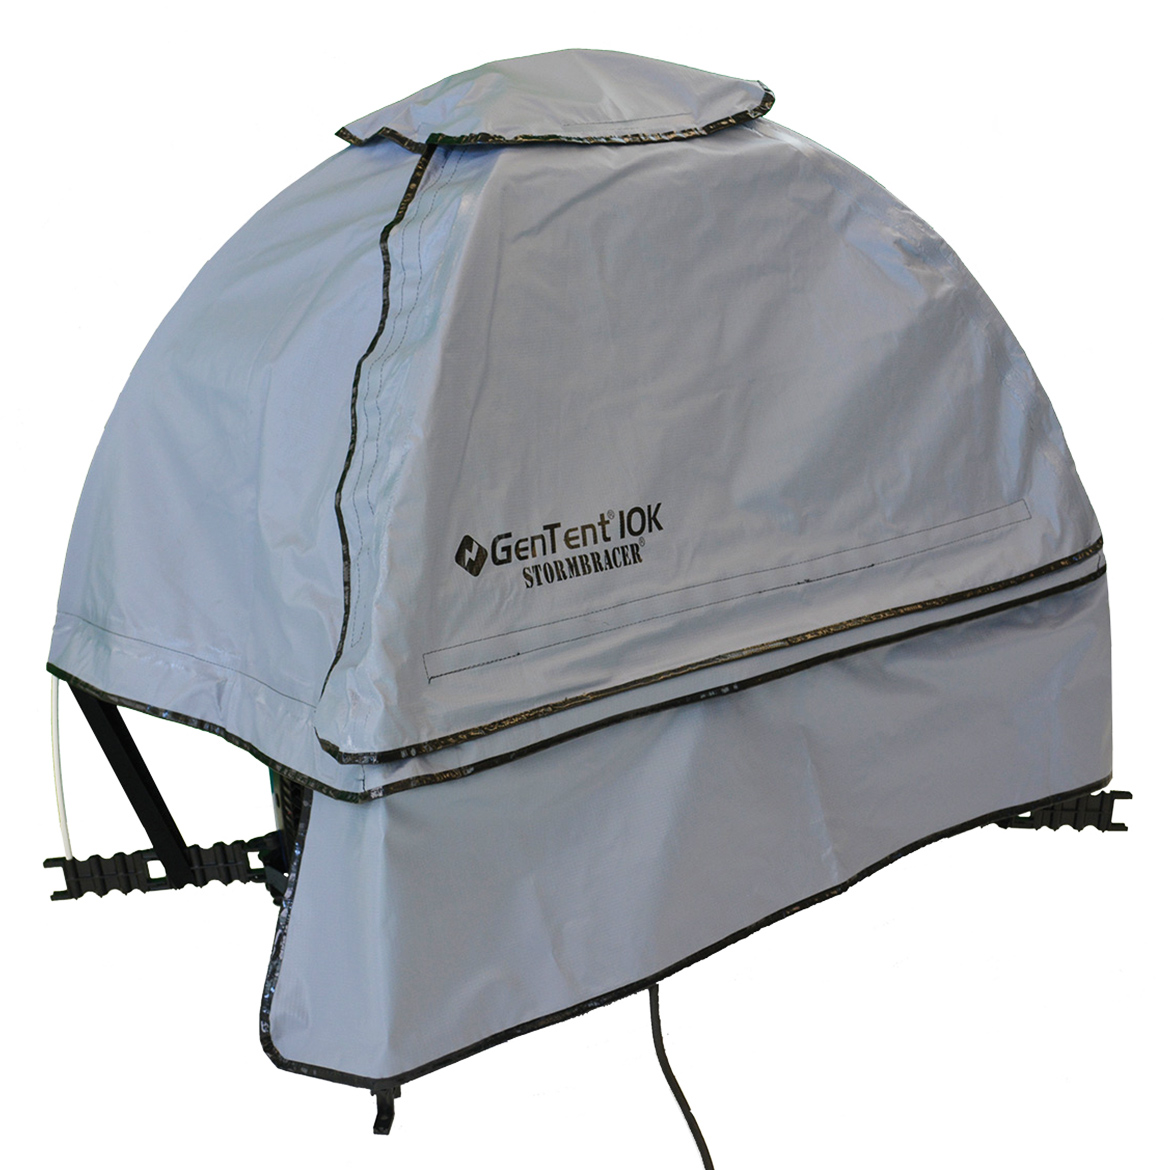 GenTent 10k Stormbracer Edition For 1000W-3000W Inverters Generator Grey Skies Canopy Safety Tent- Assembled In USA